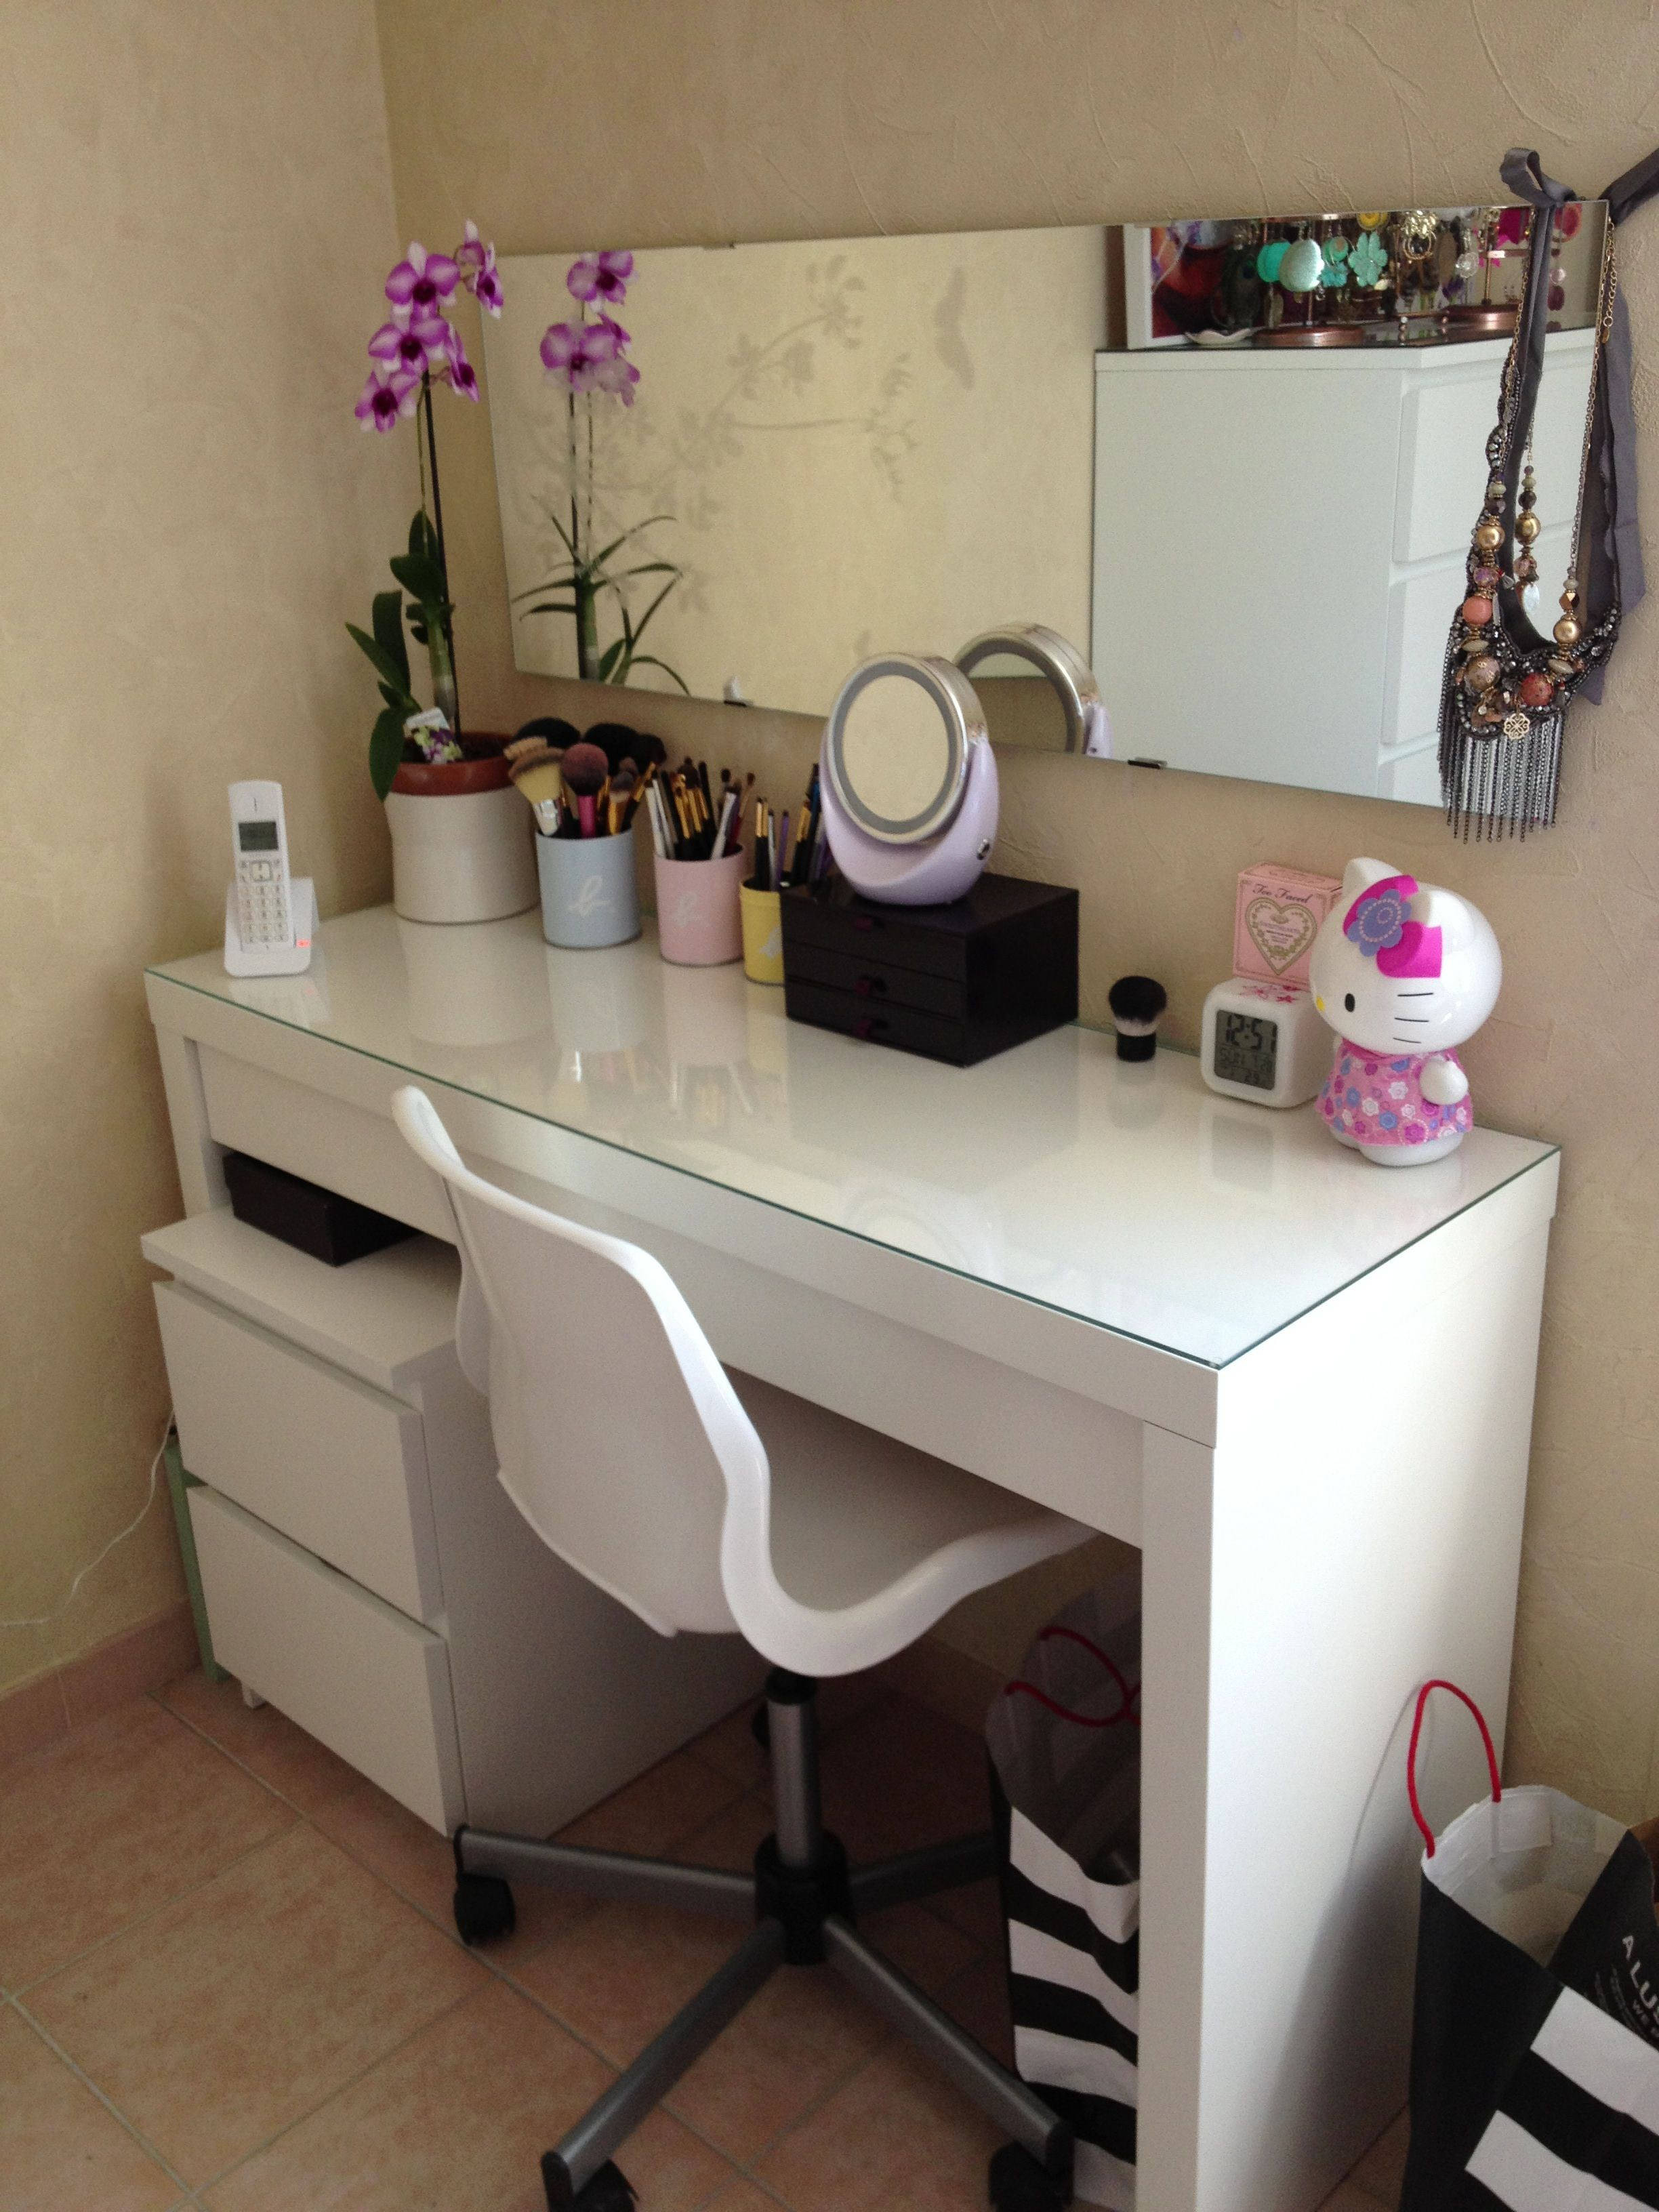 Ikea malm dressing table ikea antonius basket inserts makeup storage - Coiffeuse Moderne Coiffeuse Pinterest